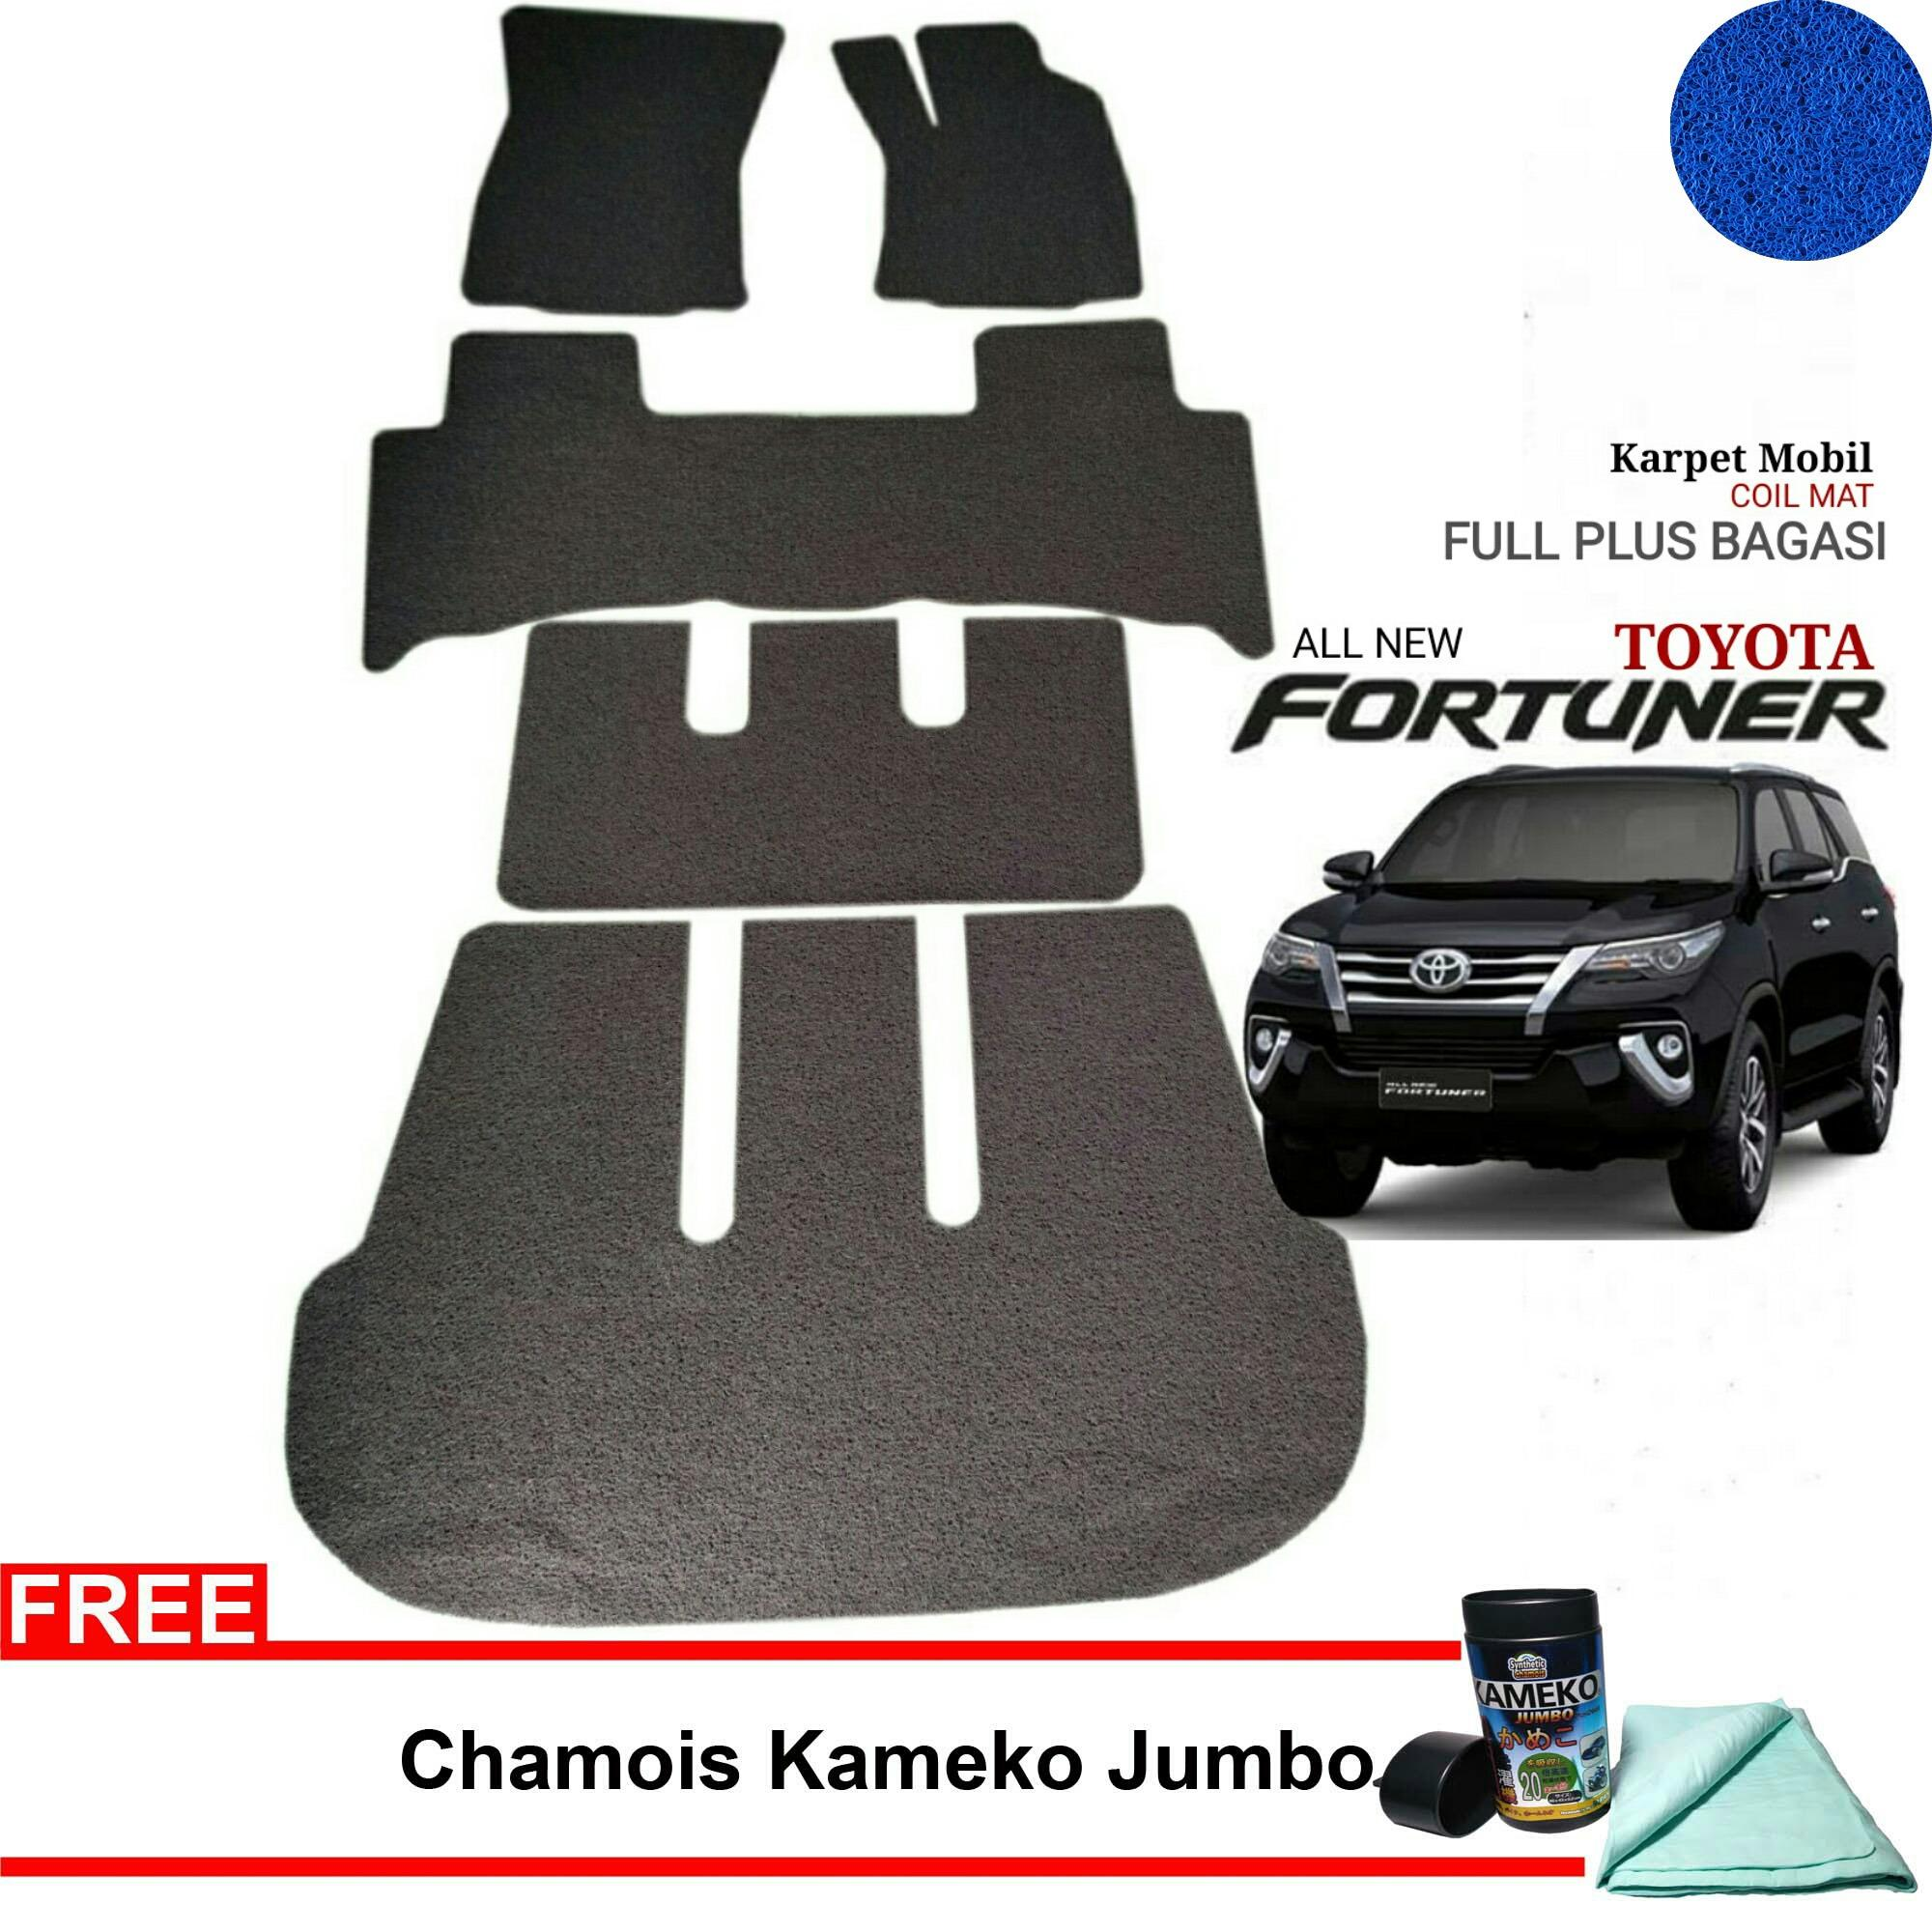 Spesifikasi Karmob Karpet Mobil All New Fortuner Karpet Mie All New Fortuner Comfort Karpet Karet All New Fortuner Aksesoris All New Fortuner Murah Berkualitas